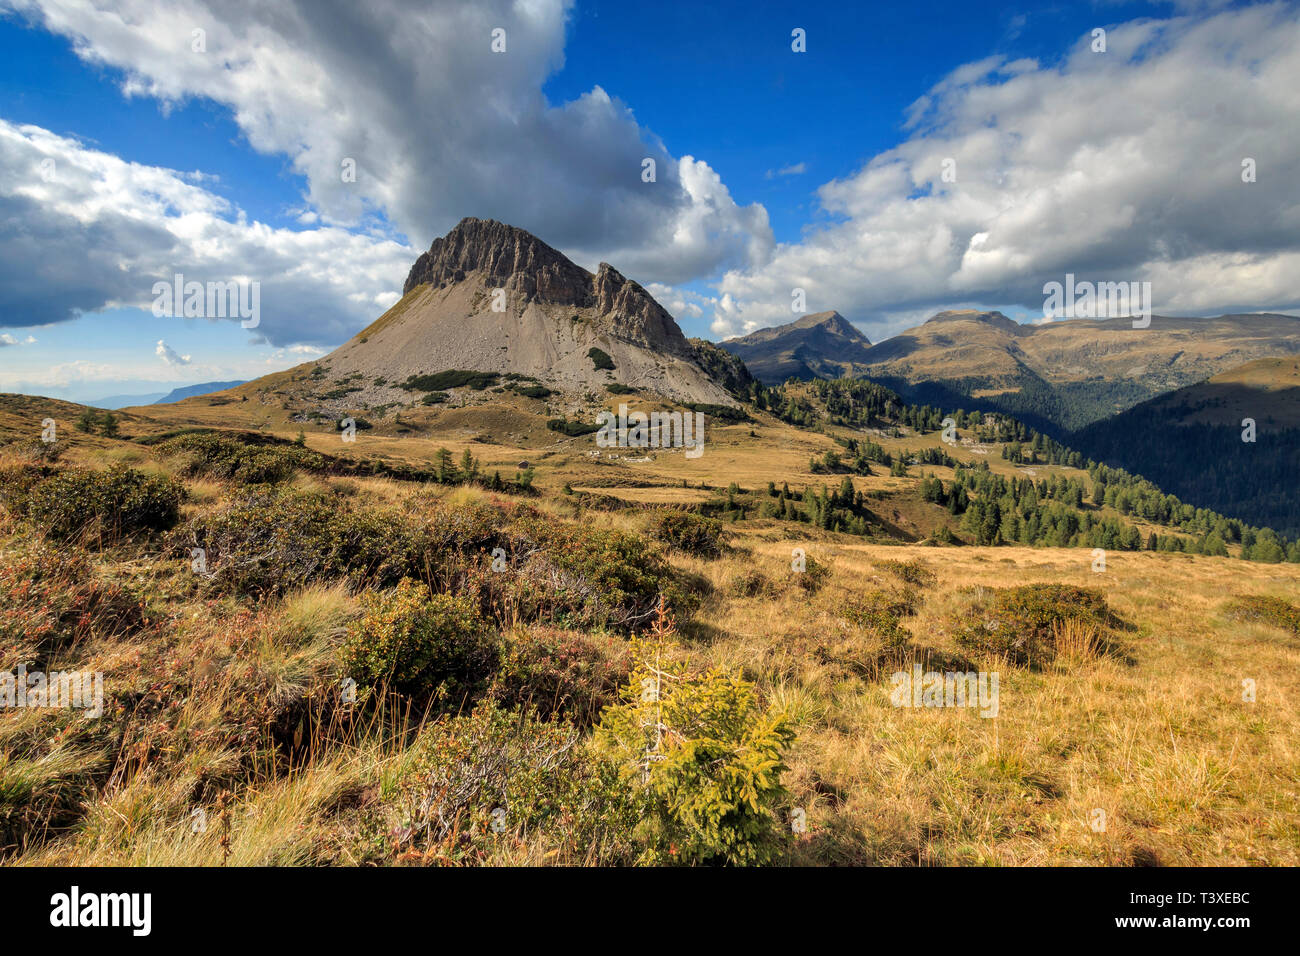 The wonderful plateau at Passo Rolle, a high altitude mountain pass linking the Primiero Valley to the Fiemme Valley, in Trentino Alto- Adige region,  - Stock Image